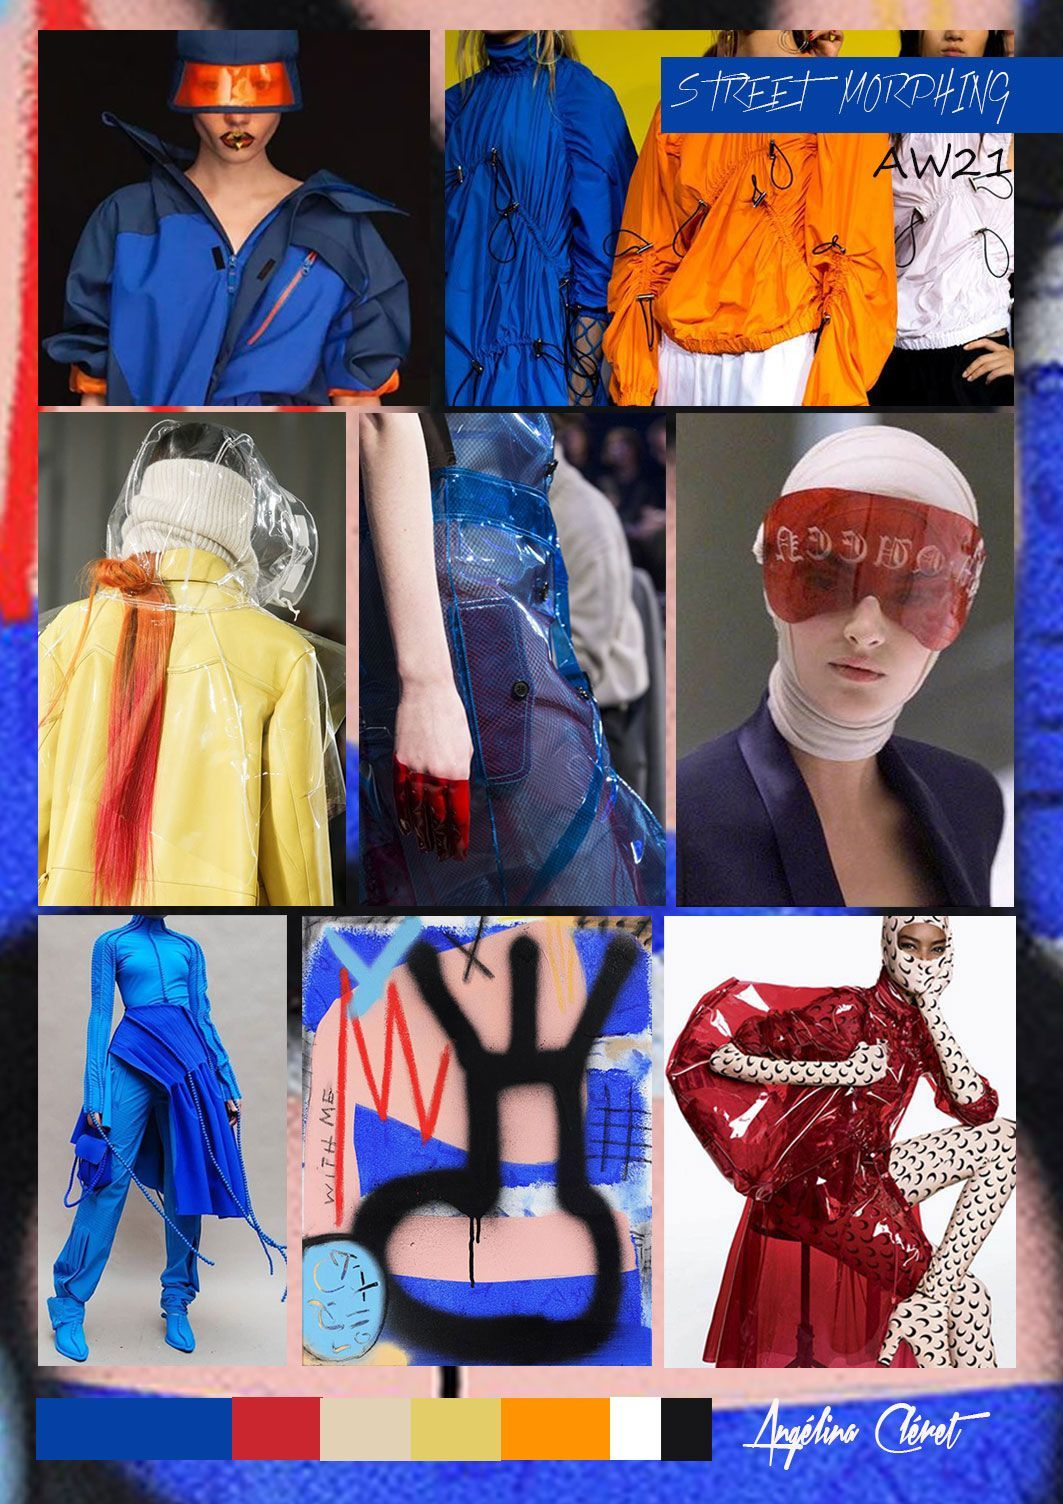 STREET MORPHING AW21 - Fashion & Colors Trend by Angélina Cléret -   - #Angélina #AW21 #Cléret #Colors #FASHION #FashionTrendsaccessories #FashionTrendsblackgirl #FashionTrendsforecasting #FashionTrendshijab #FashionTrendsjeans #MORPHING #Street #Trend #weirdFashionTrends